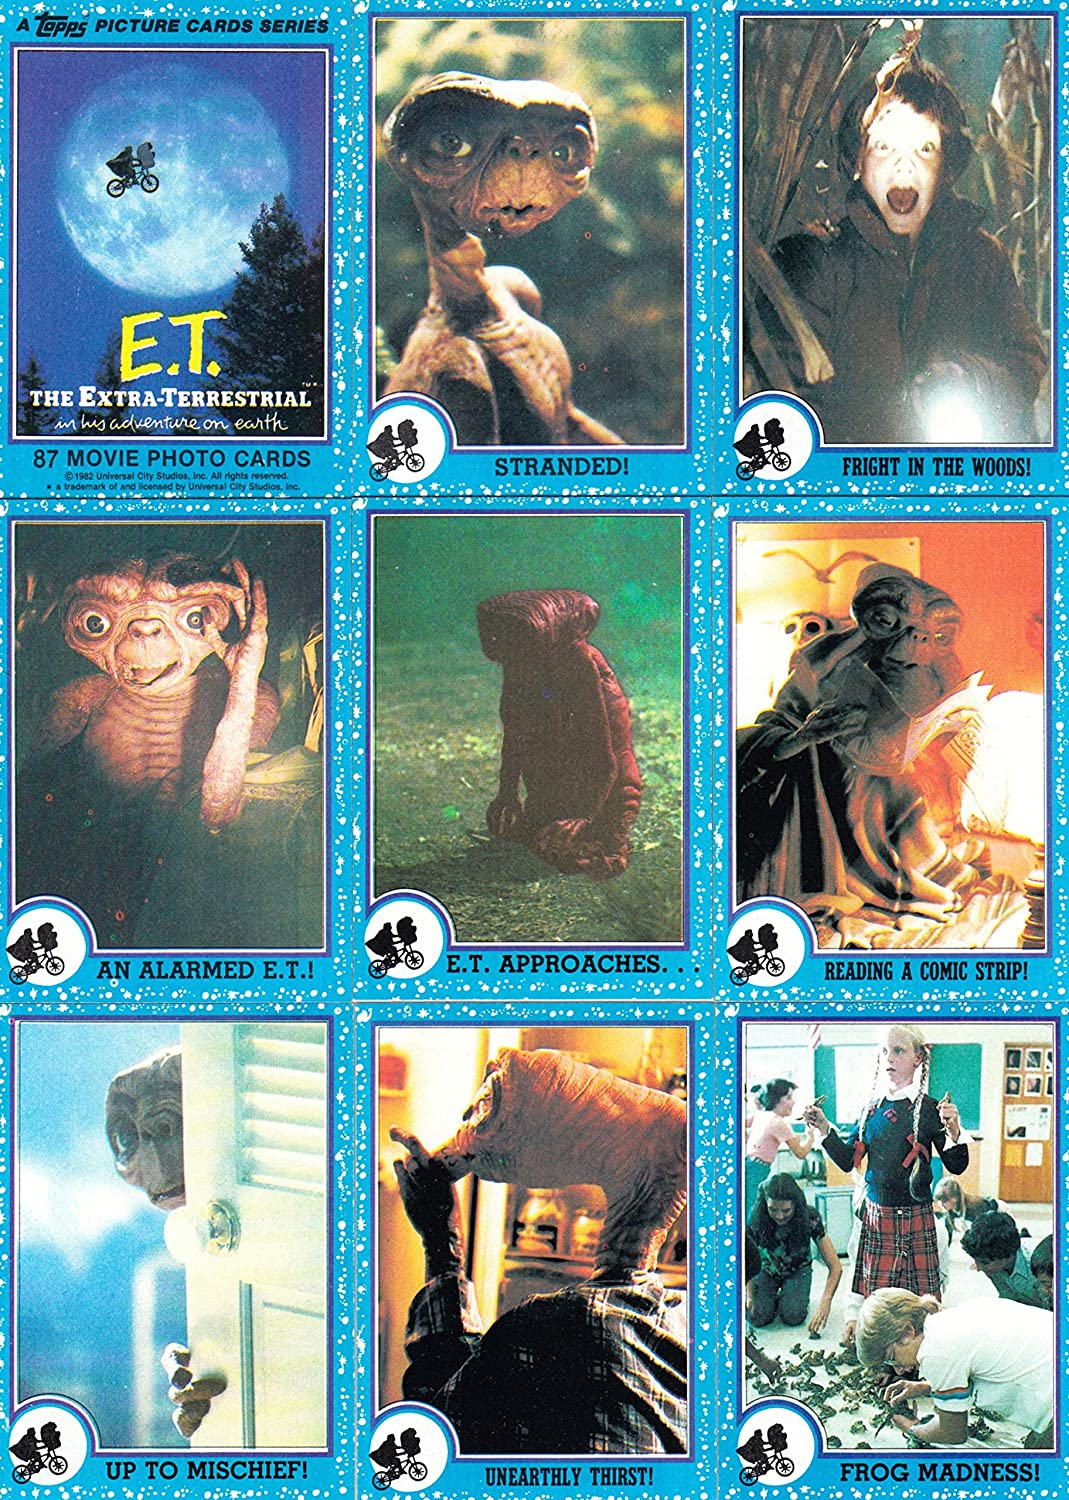 E.T. ET THE EXTRA TERRESTRIAL MOVIE 1982 TOPPS COMPLETE BASE CARD SET OF 87 - NO STICKERS